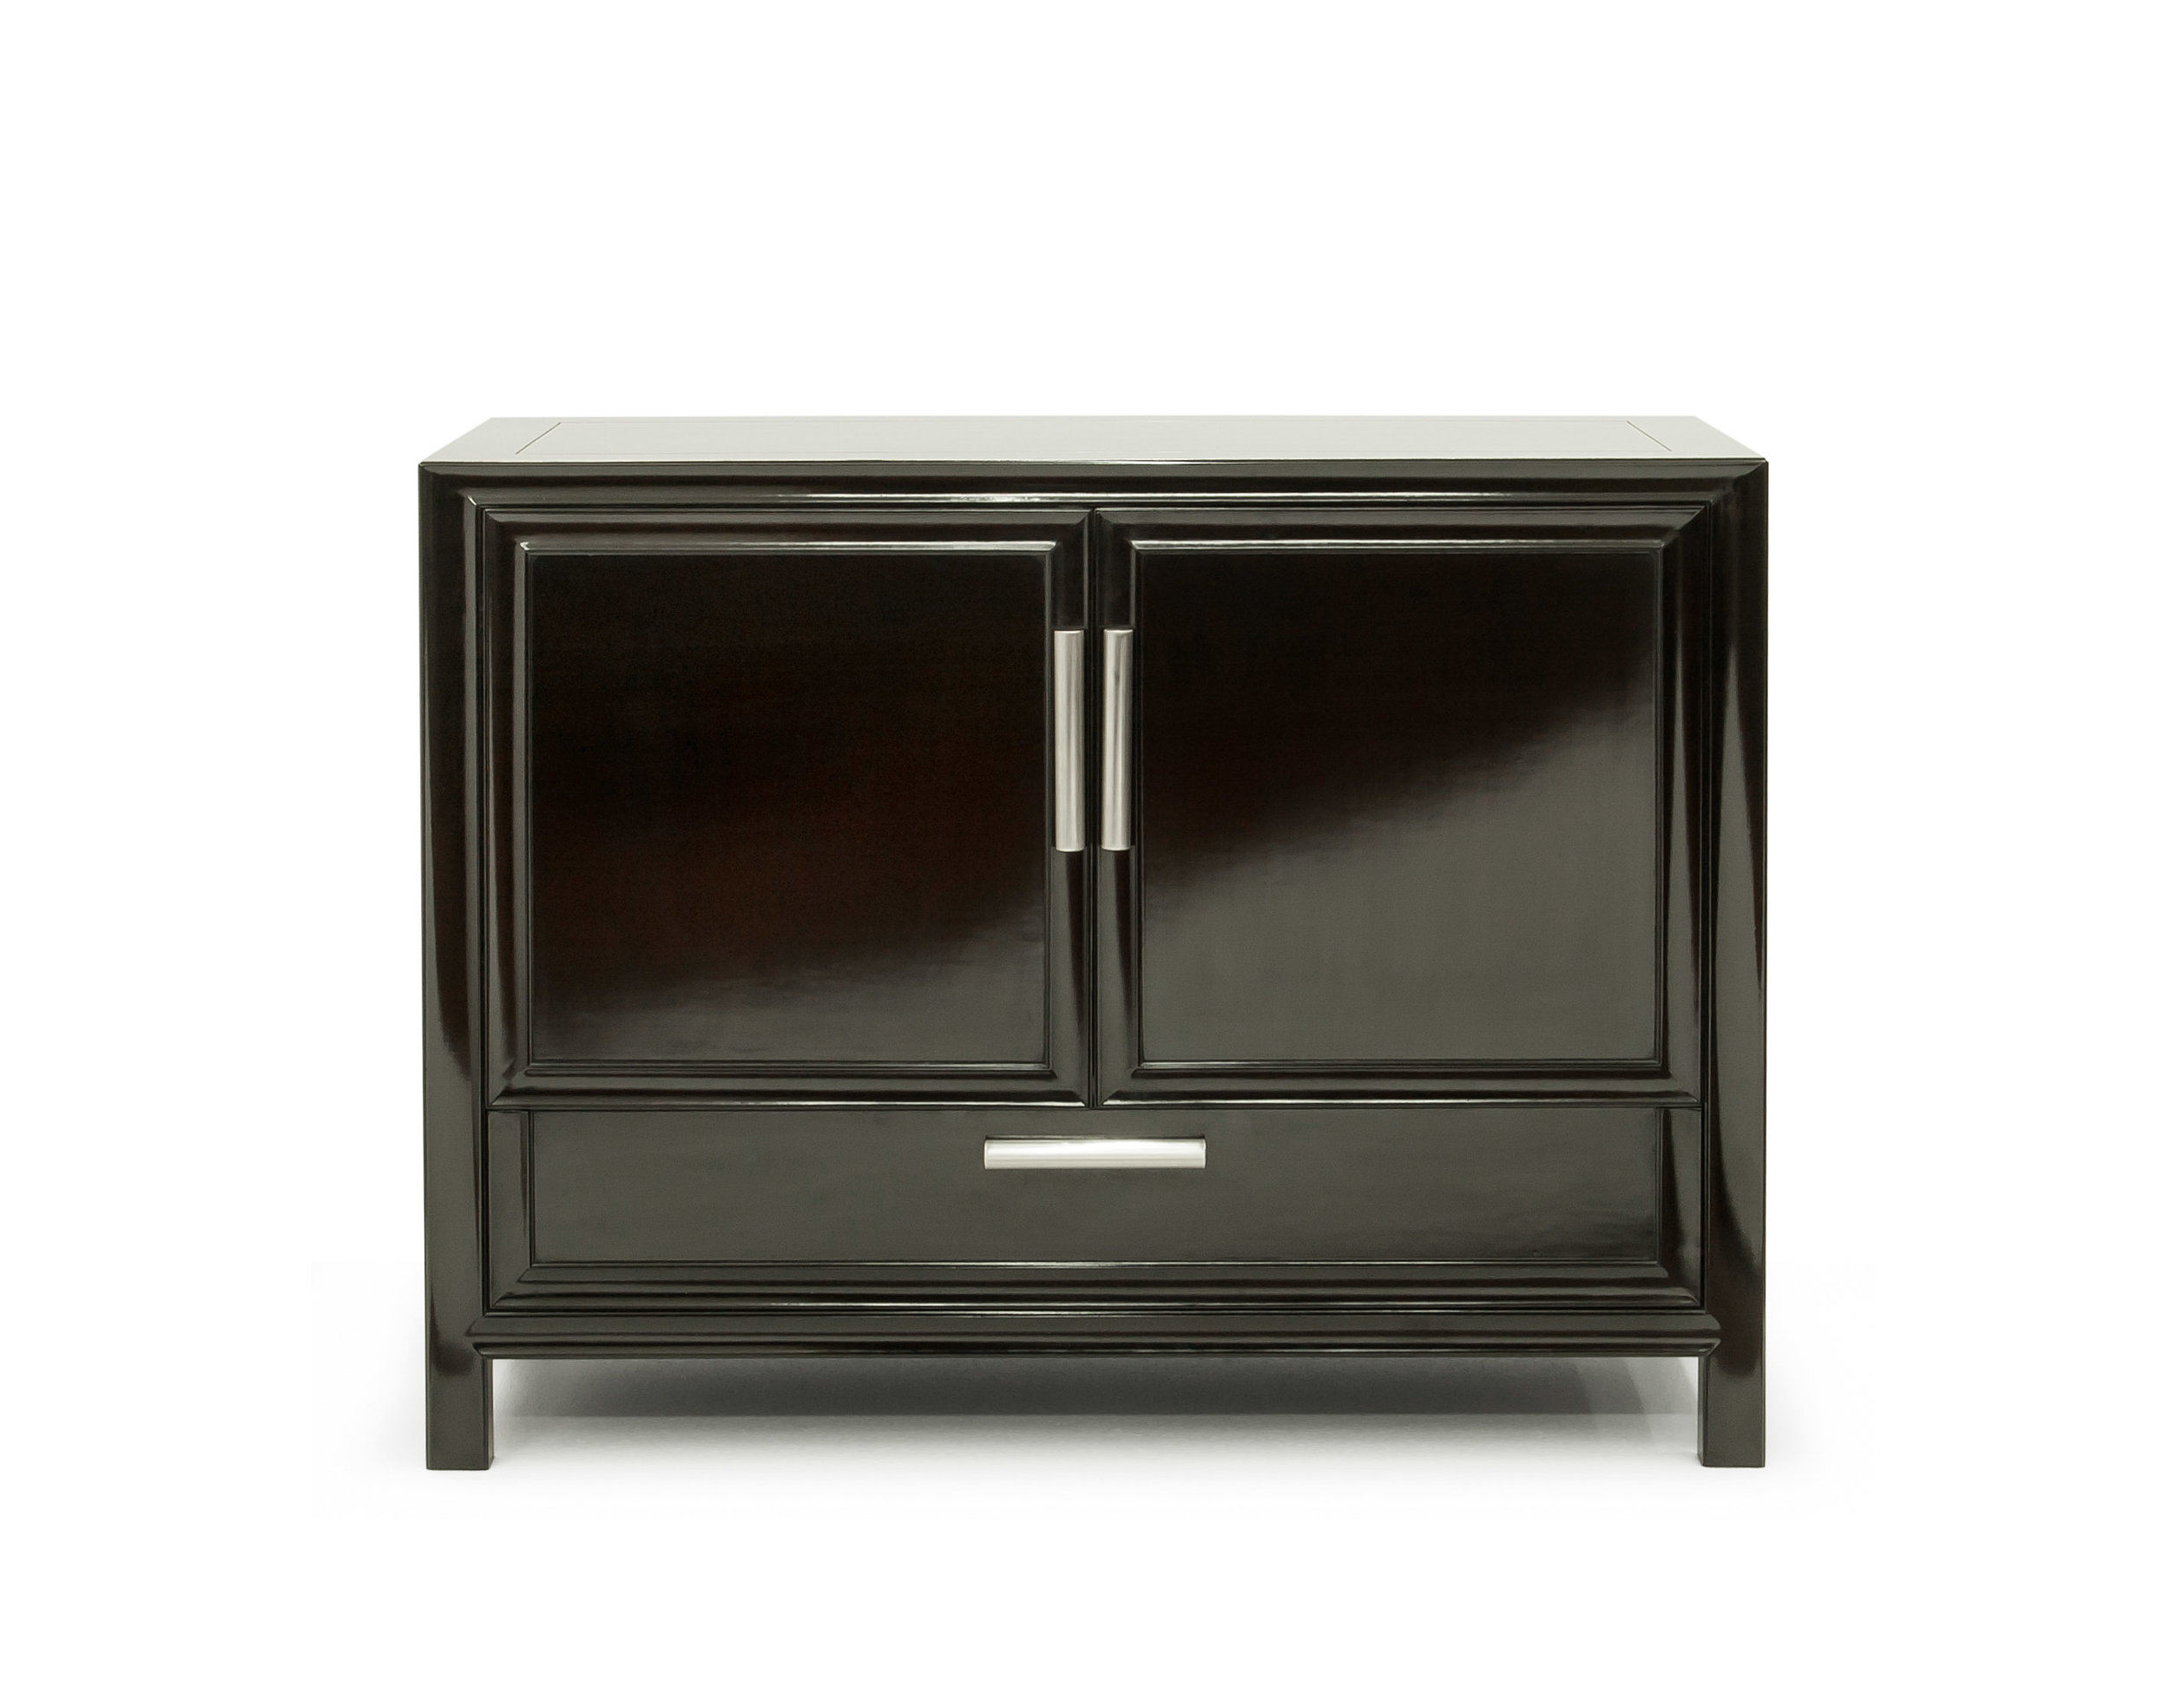 ....modern chinese furniture : bedside cabinet ..摩登中式家具 : 床头柜....